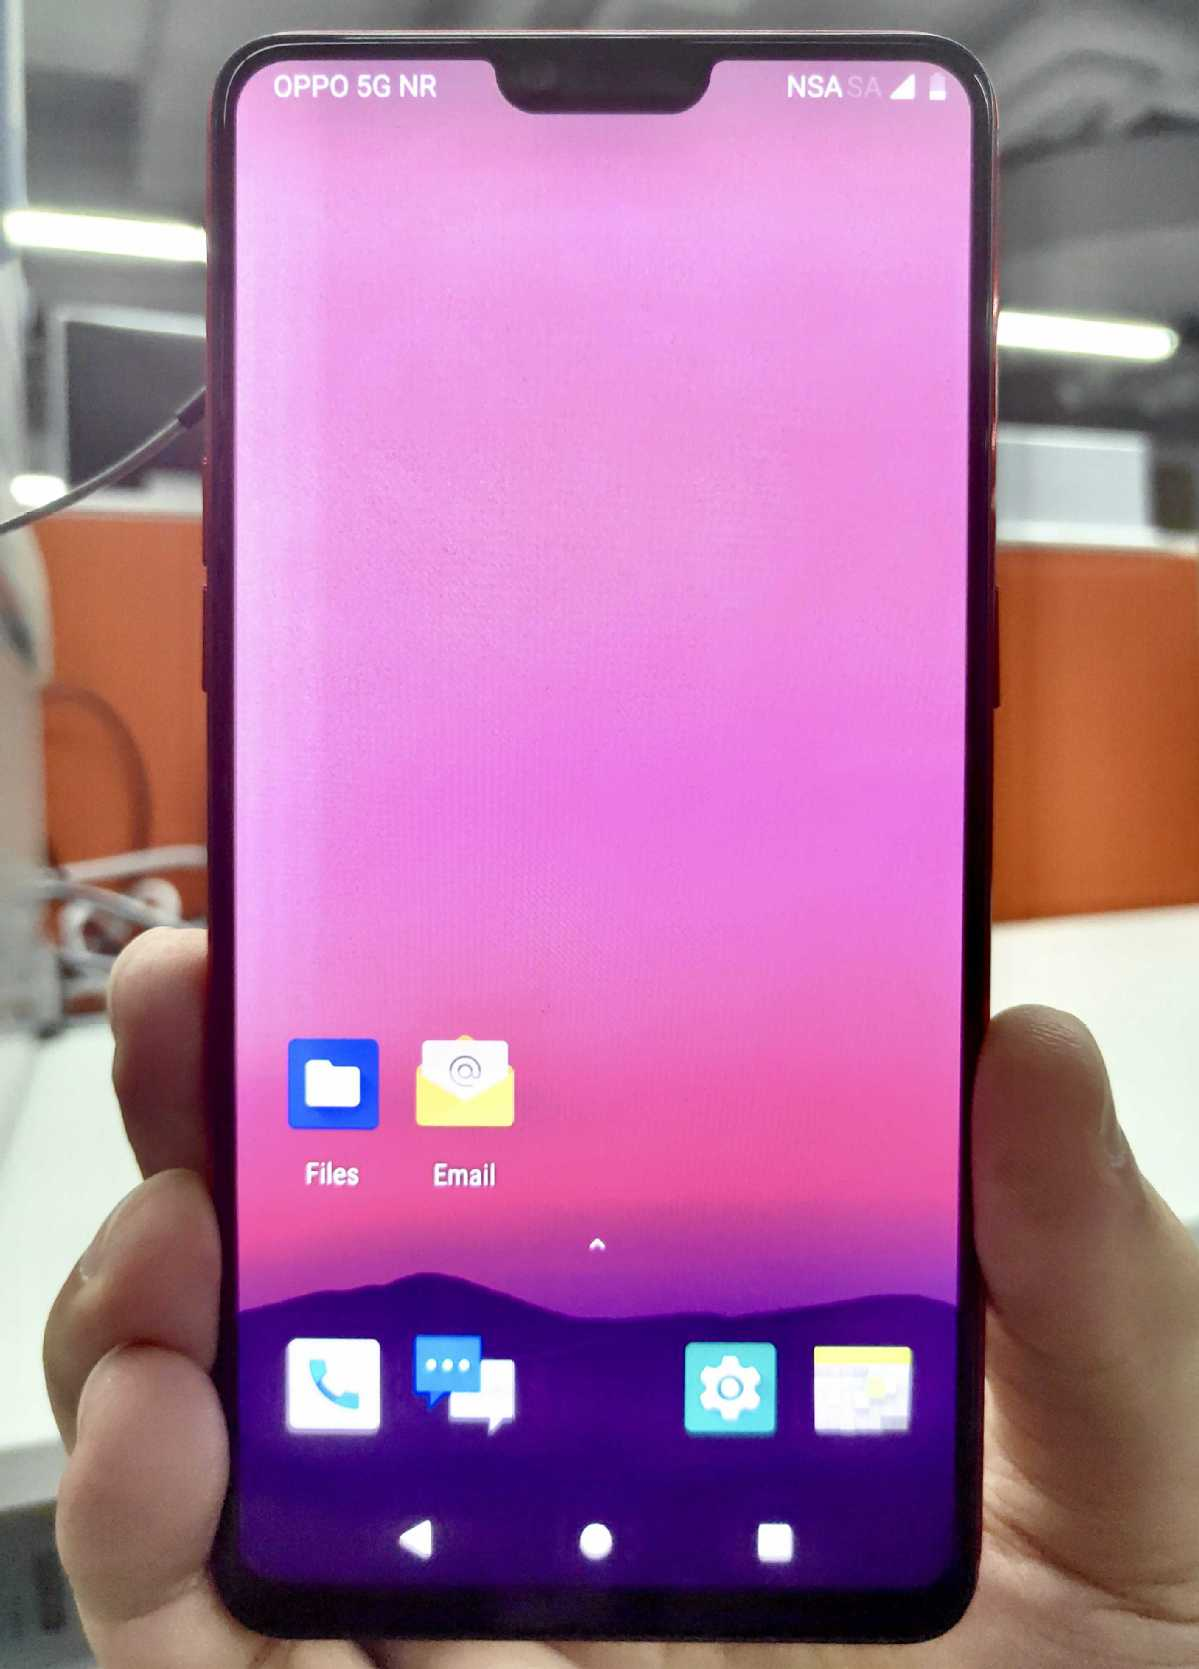 Oppo Getting Close To 5g Smartphone Chinadaily Com Cn